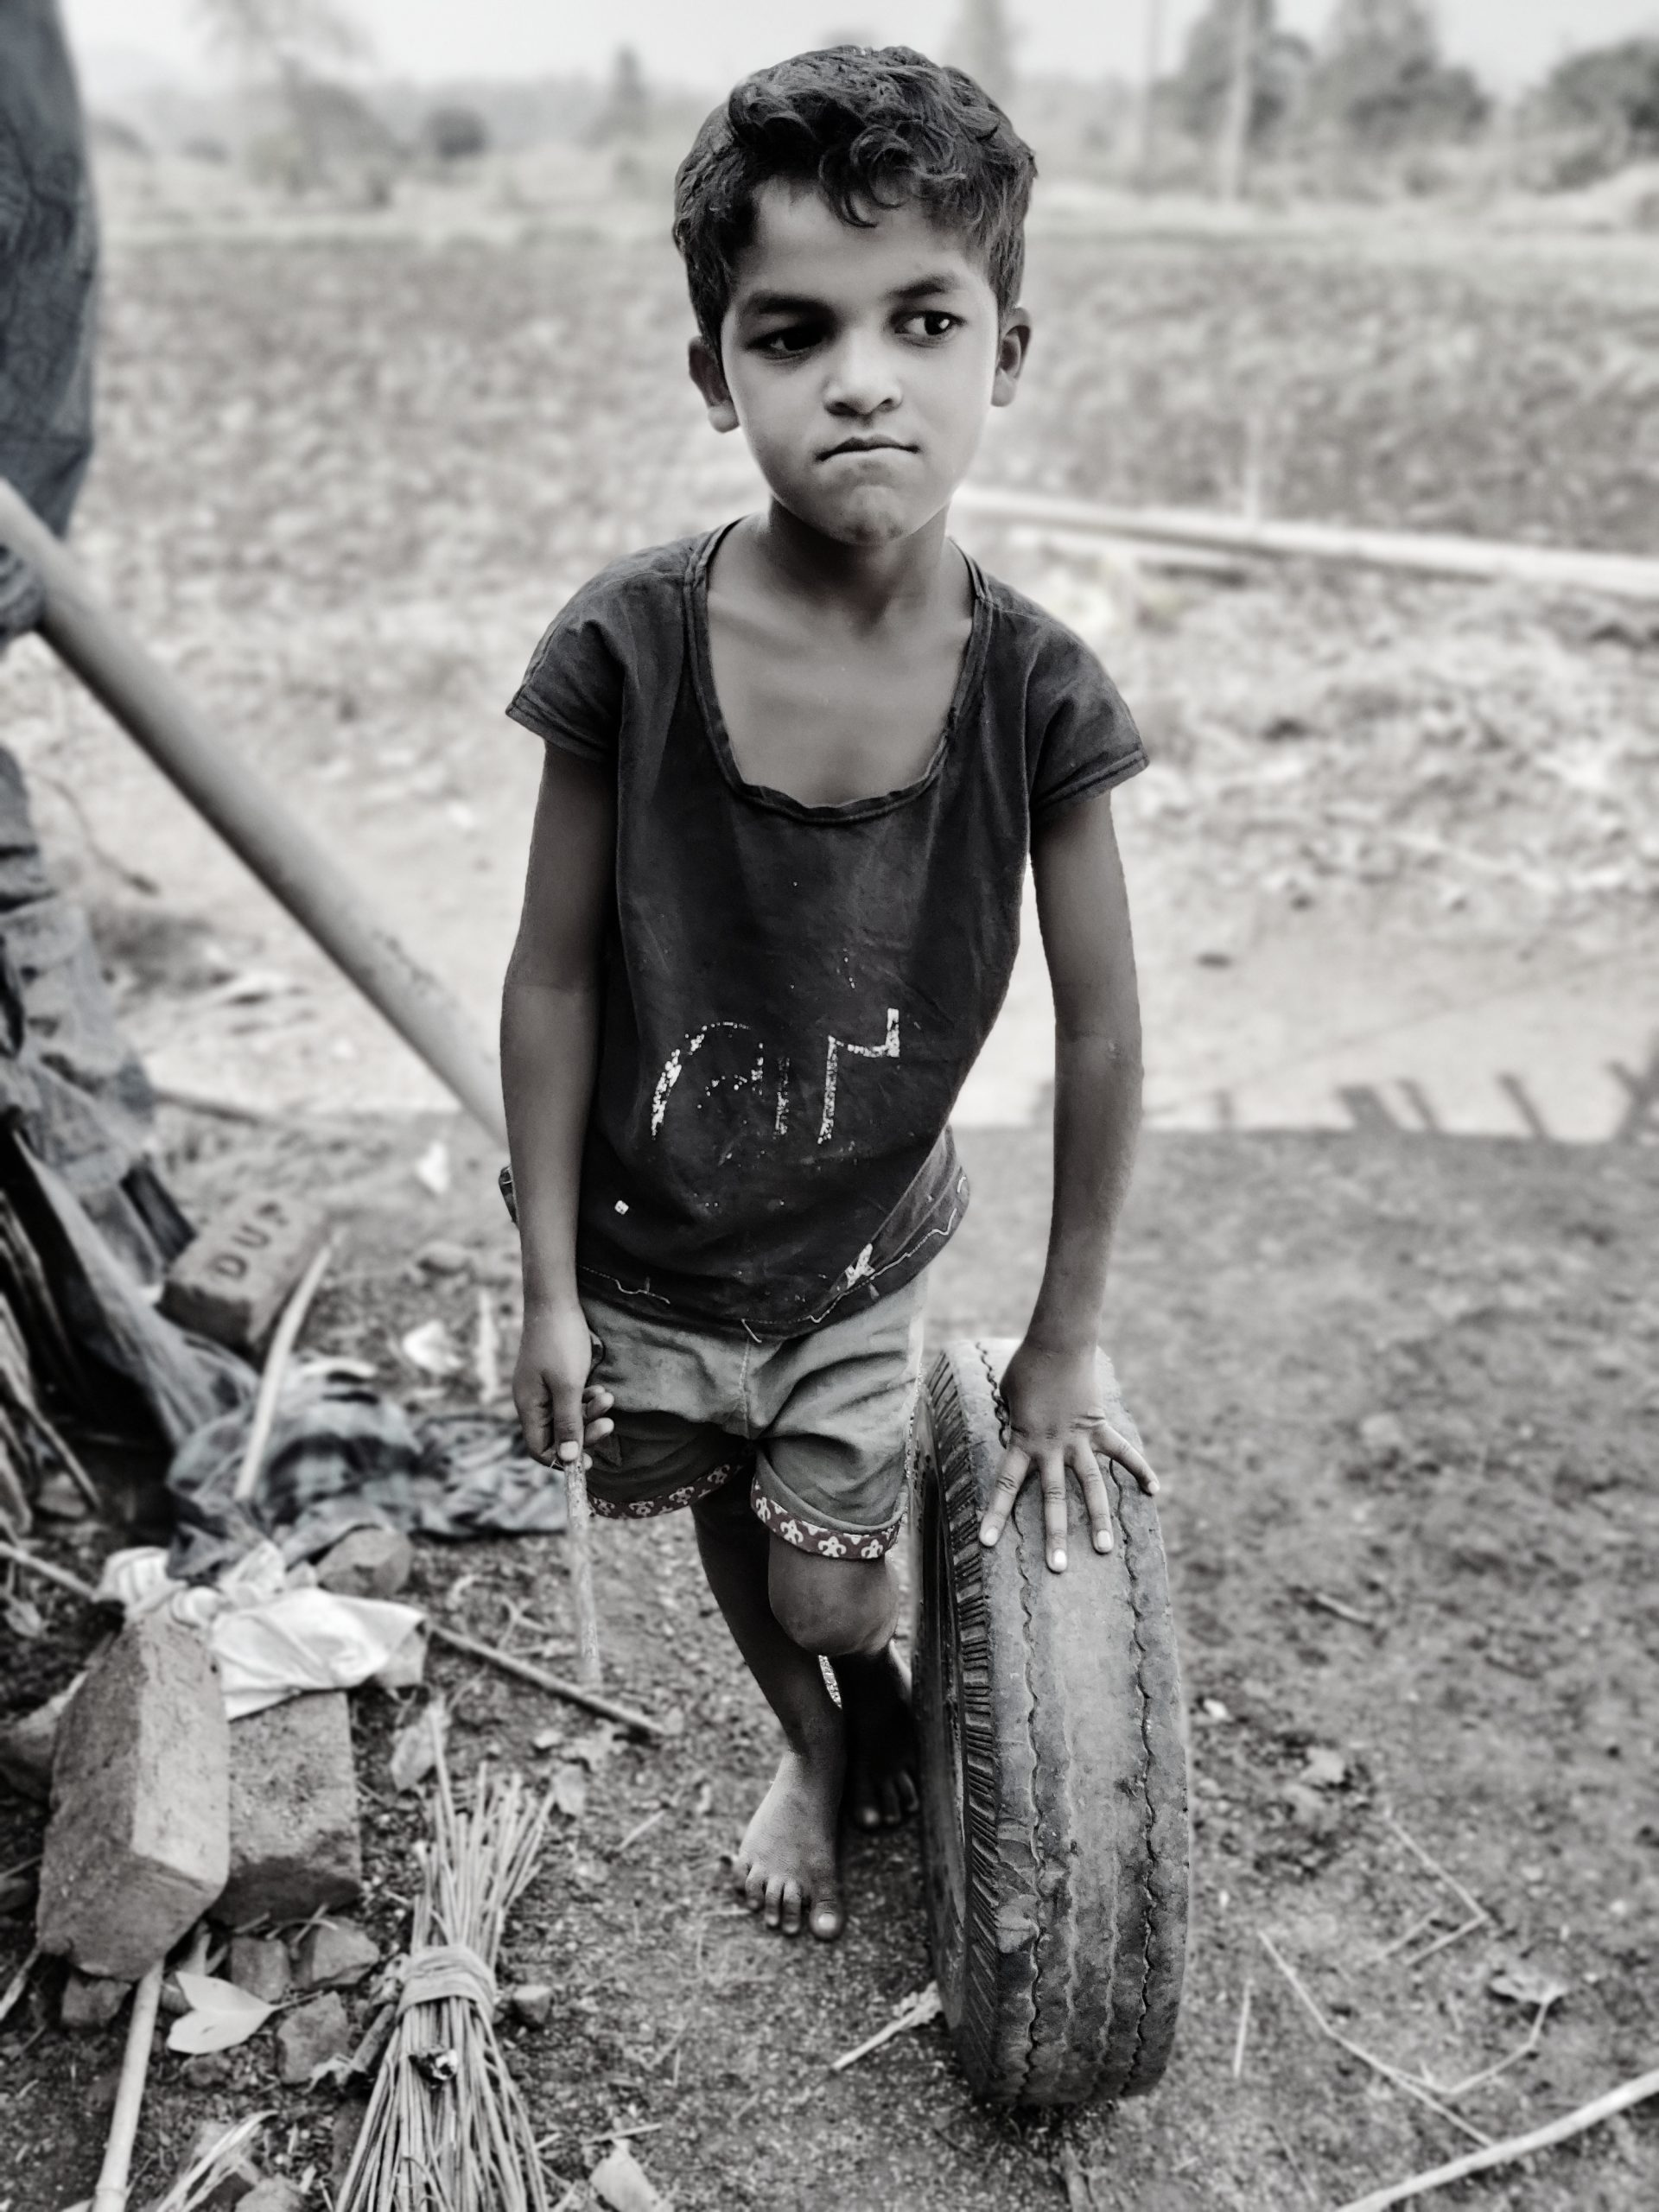 Boy Playing with Tire